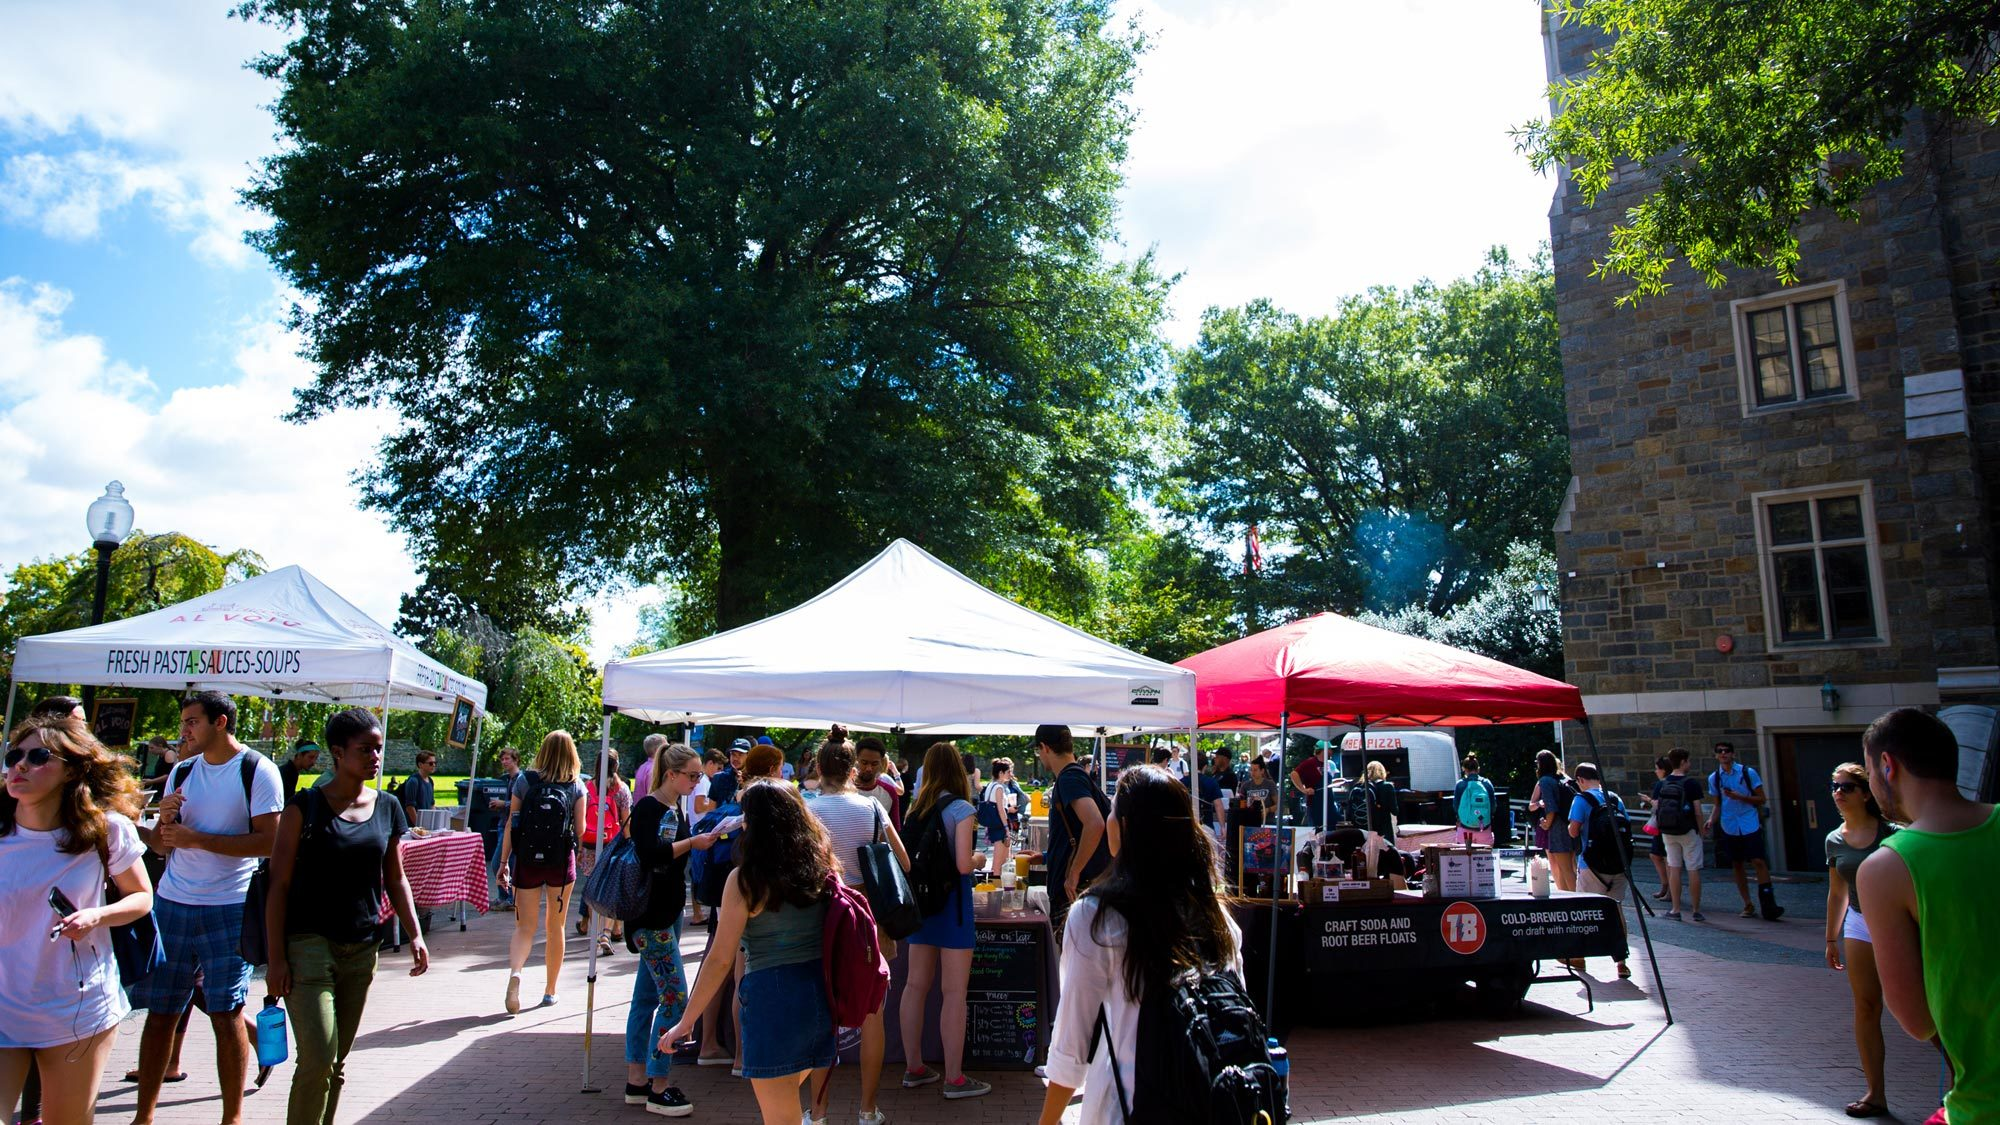 Local food vendors set up tents on campus to offer dishes to students during the weekly Farmer's Market.